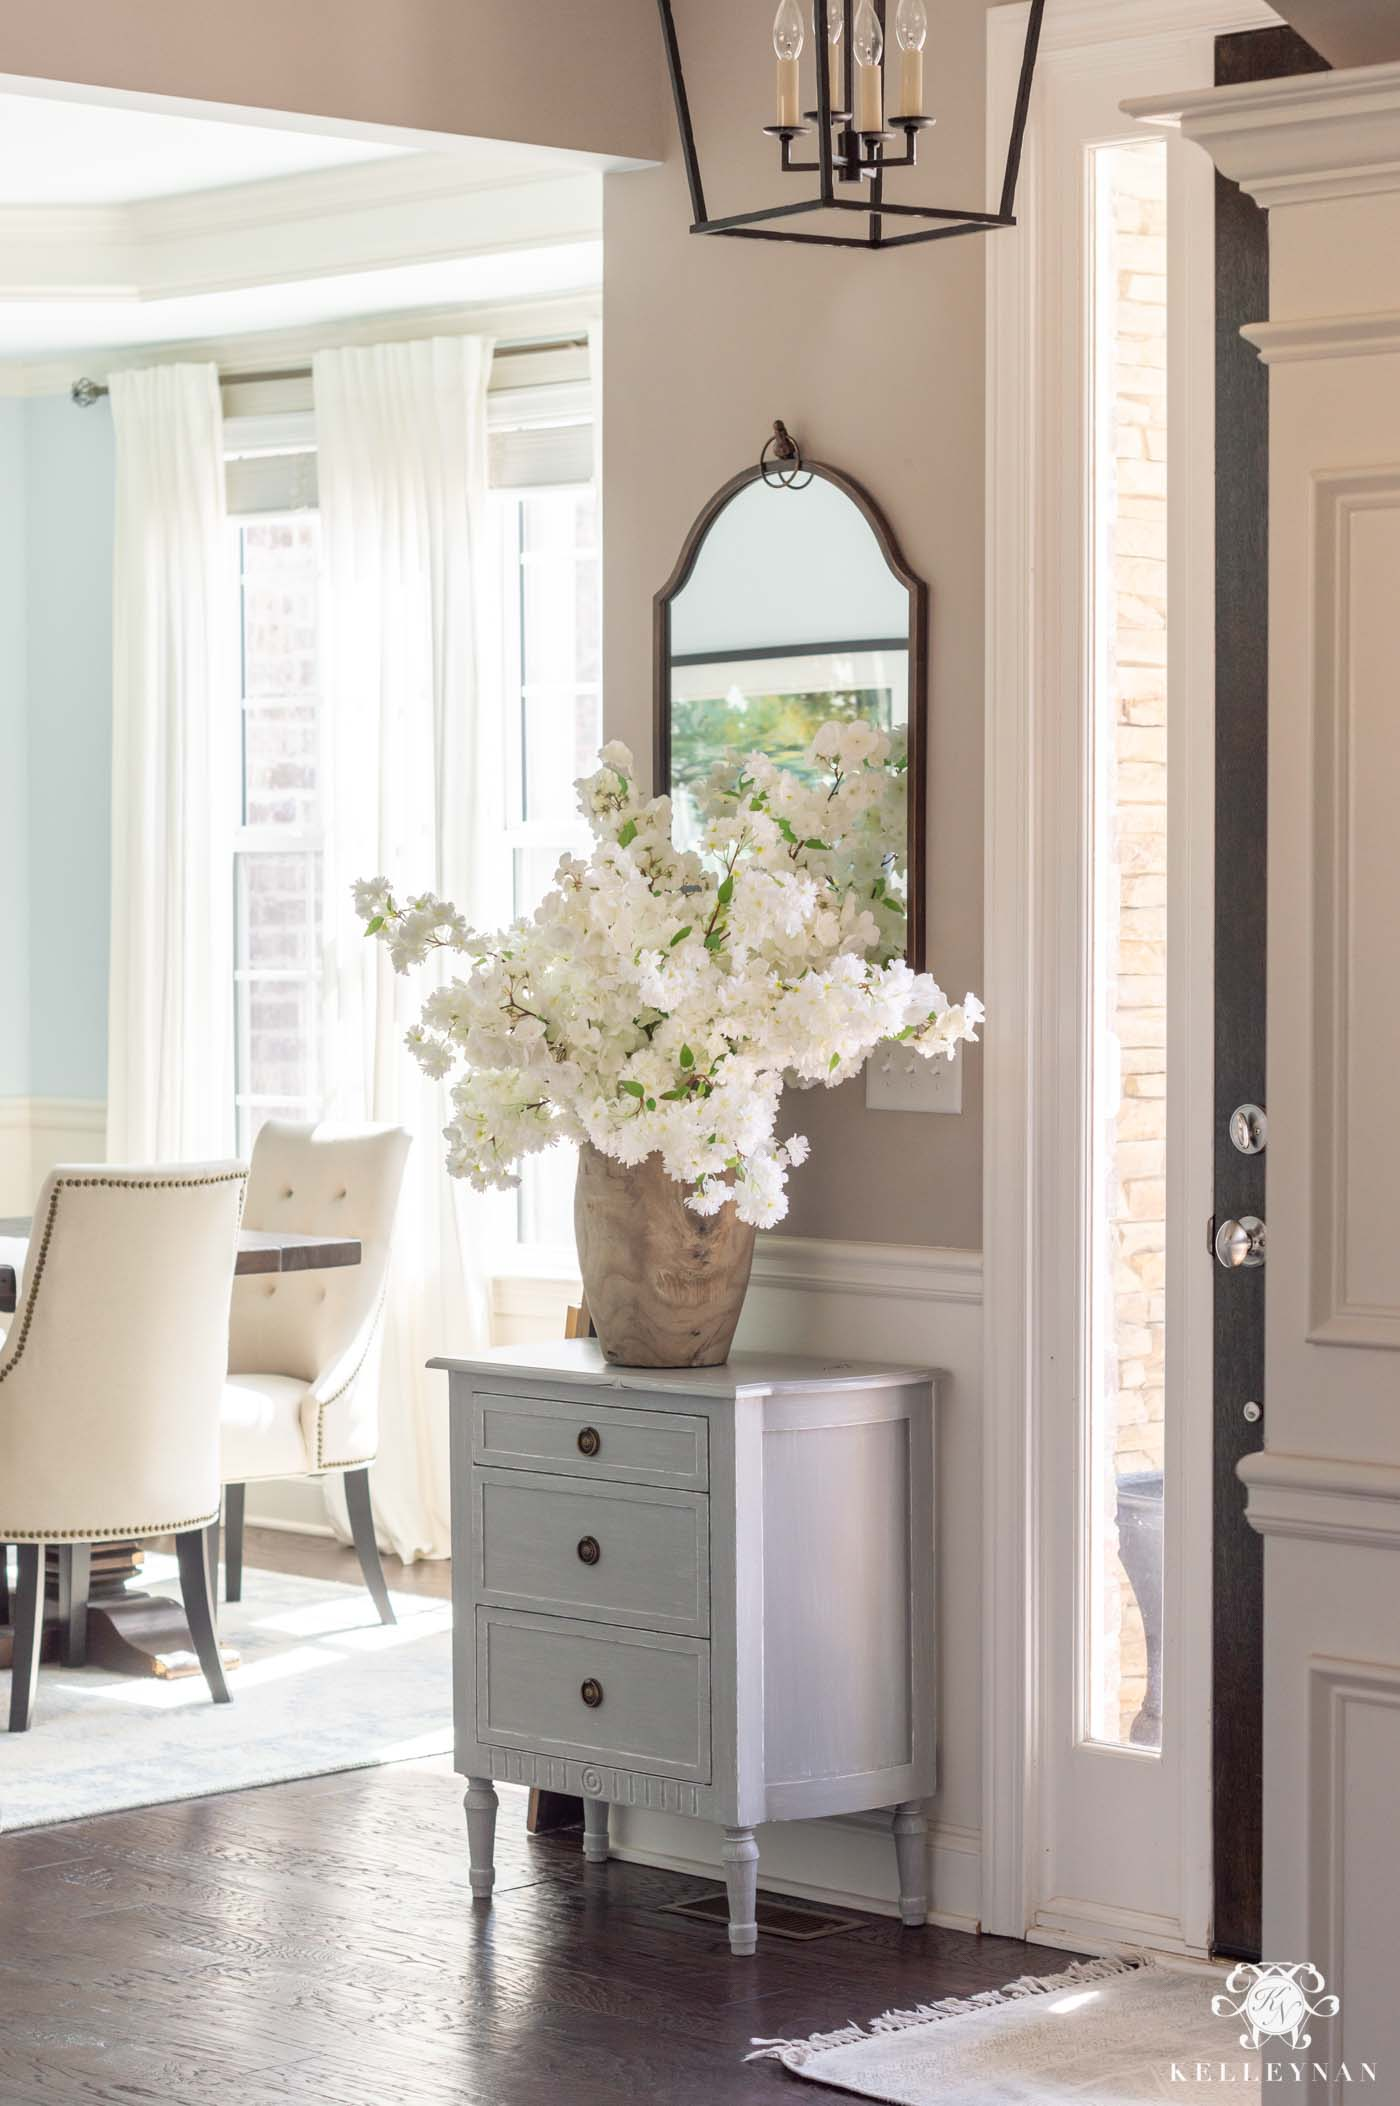 Simple Small Entry Decor for Spring